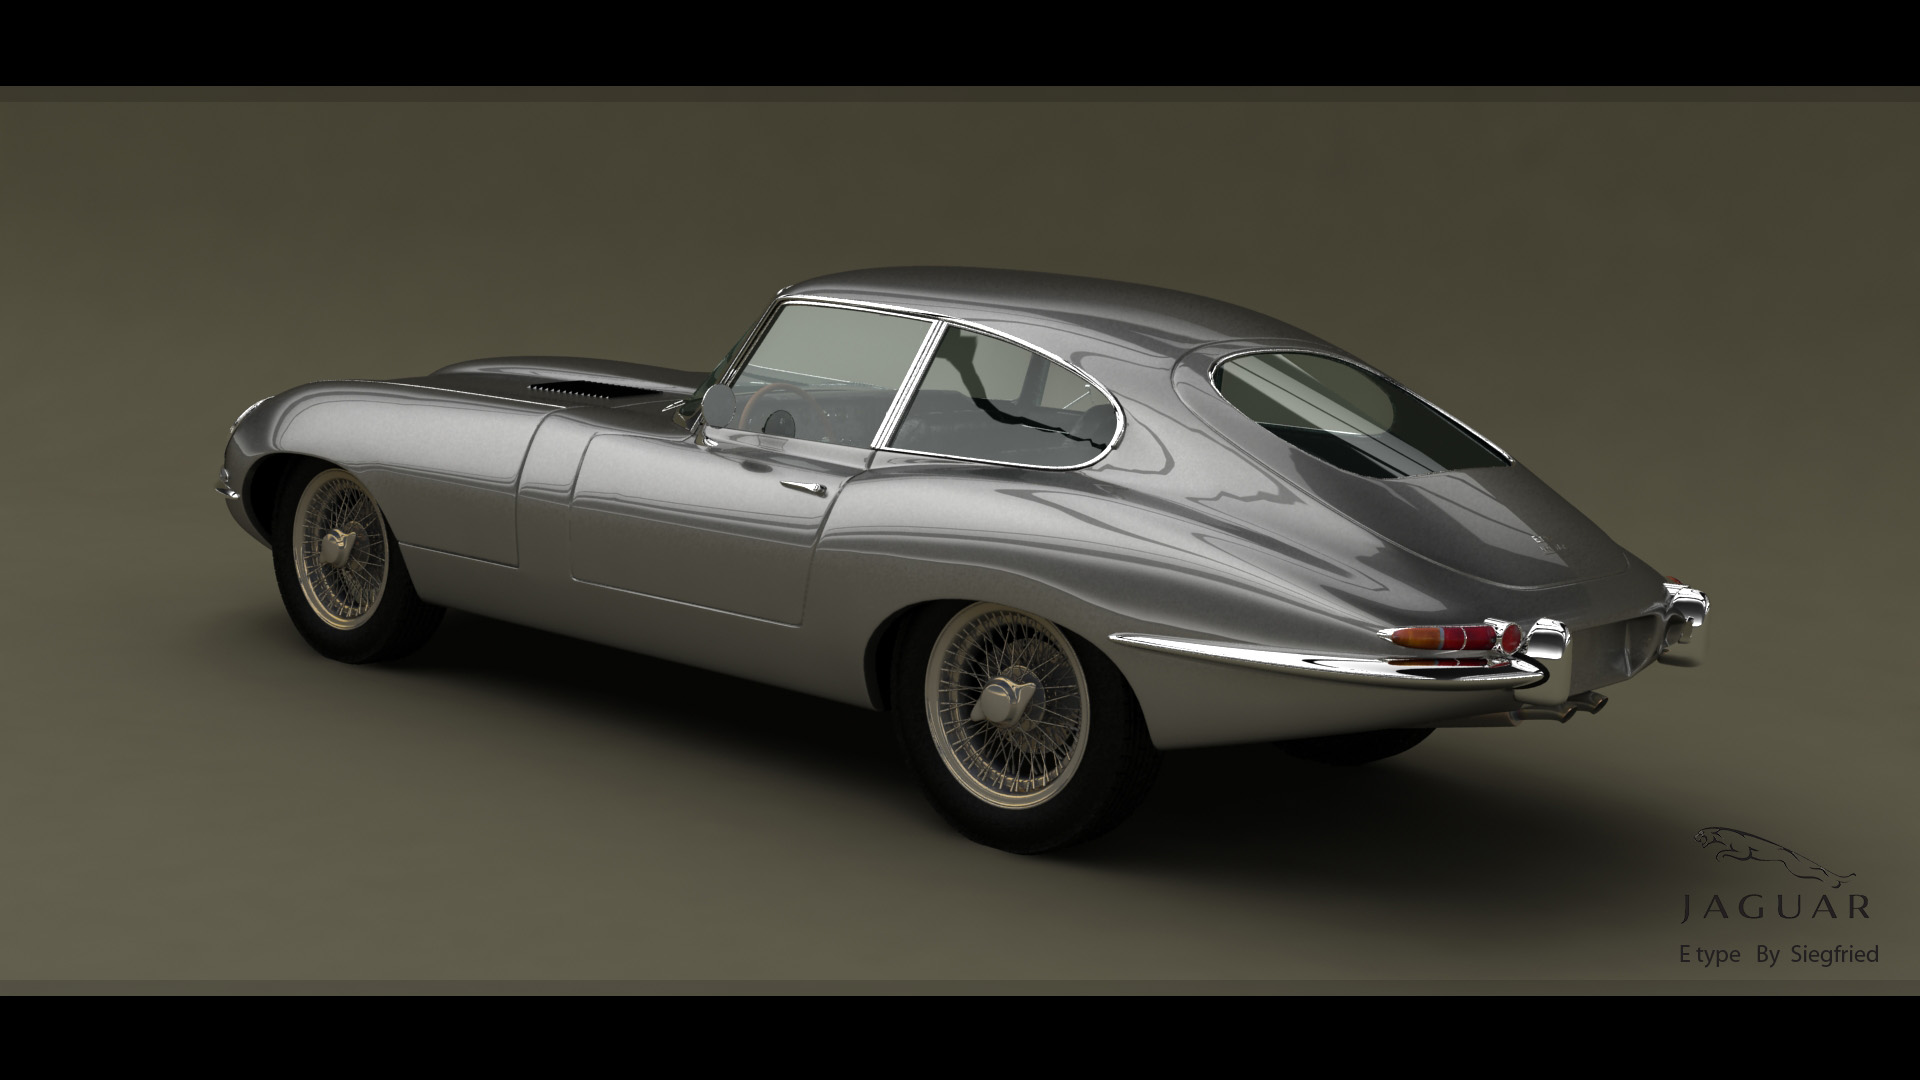 2 Jaguar E Type in addition Jaguar Lightweight E Type Revealed together with Best Celebrity Car Collections likewise 1985 Jaguar XJR 7 photo in addition Photos. on 1969 jaguar xke